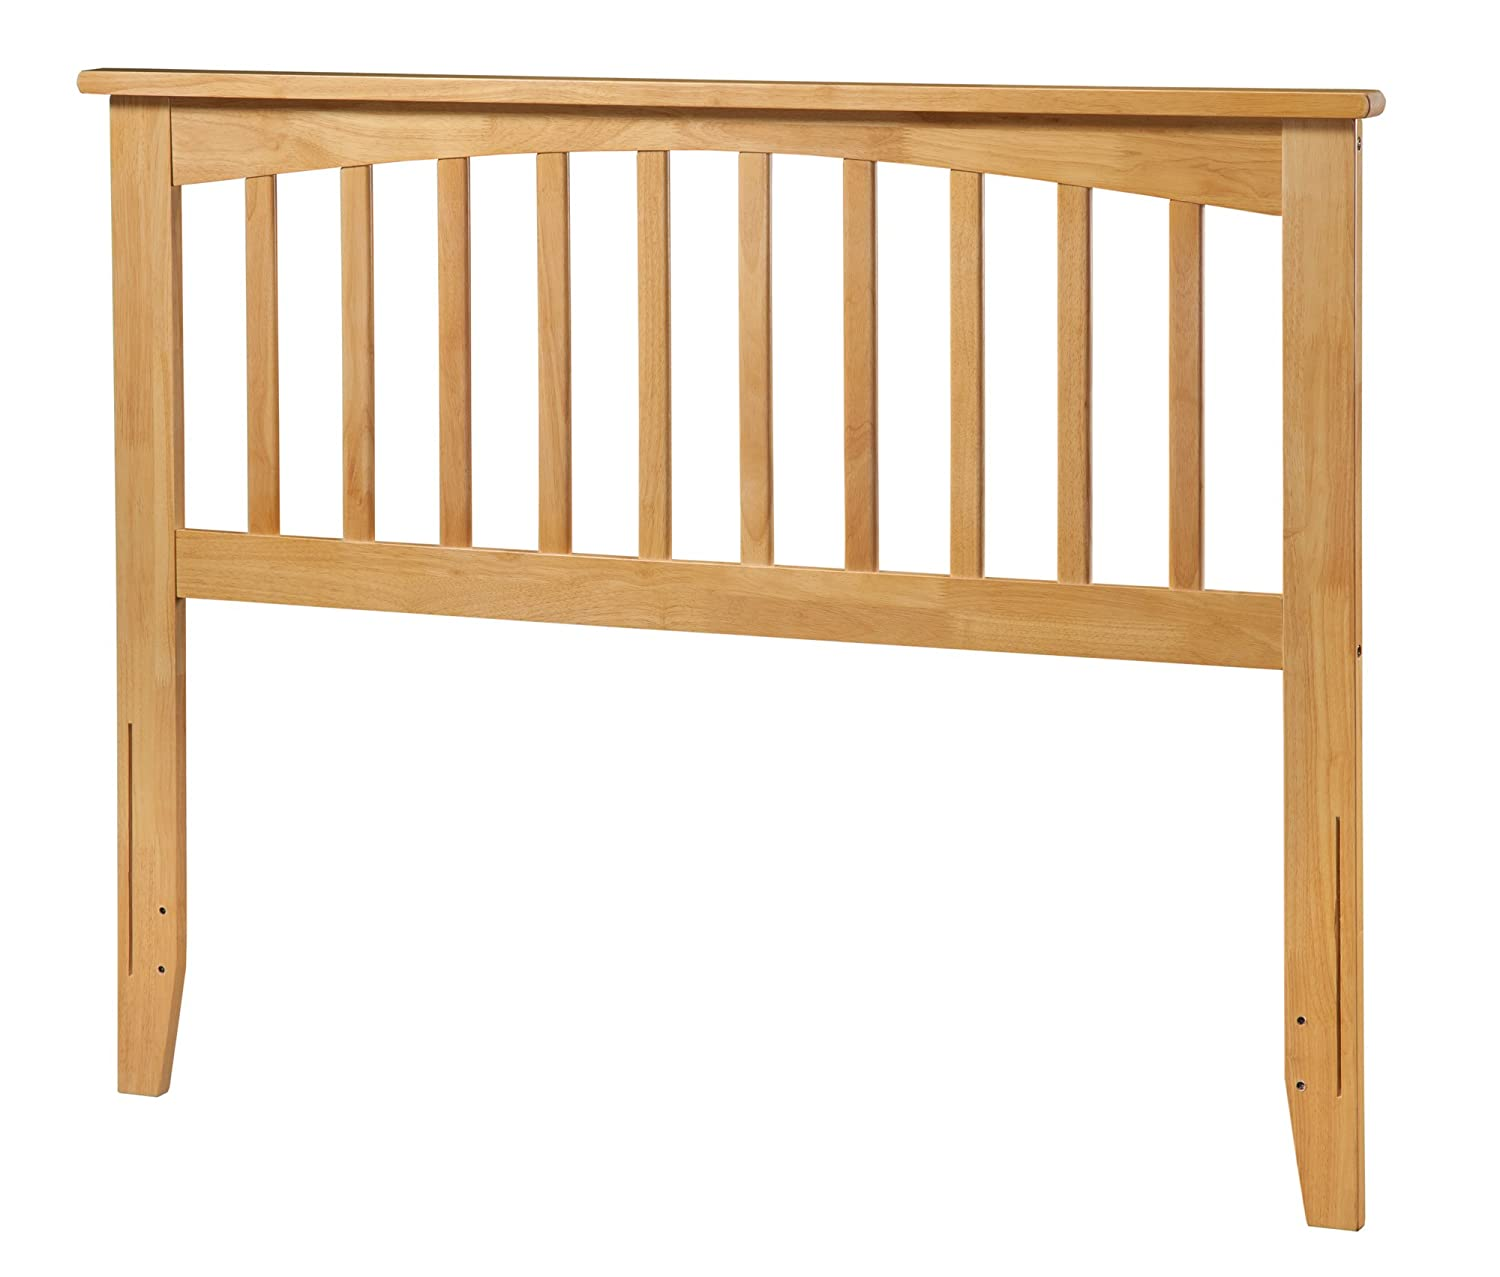 Atlantic Furniture Mission Headboard - Full - Natural